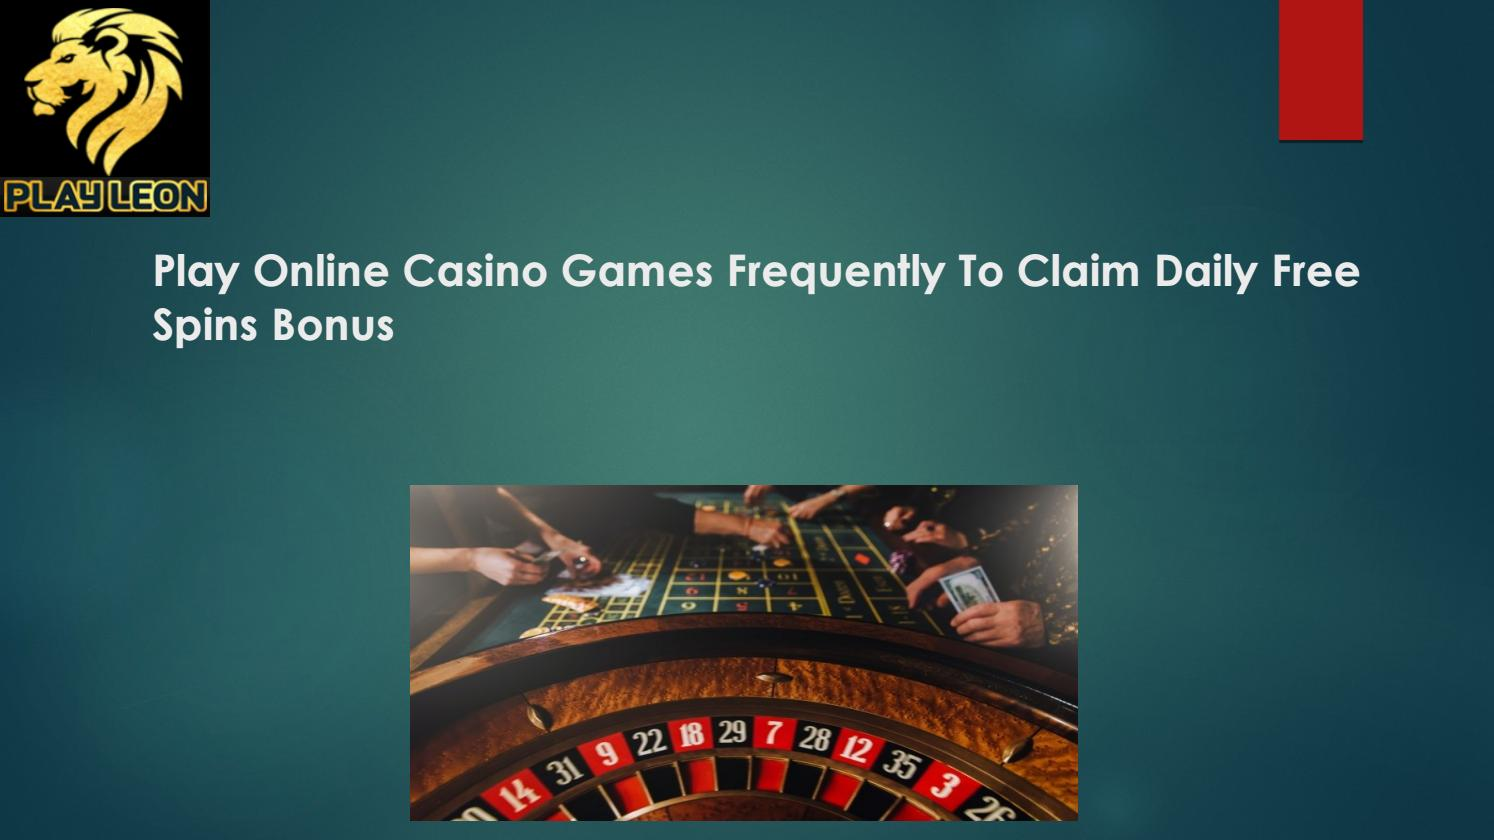 Play Online Casino Games Frequently To Claim Daily Free Spins